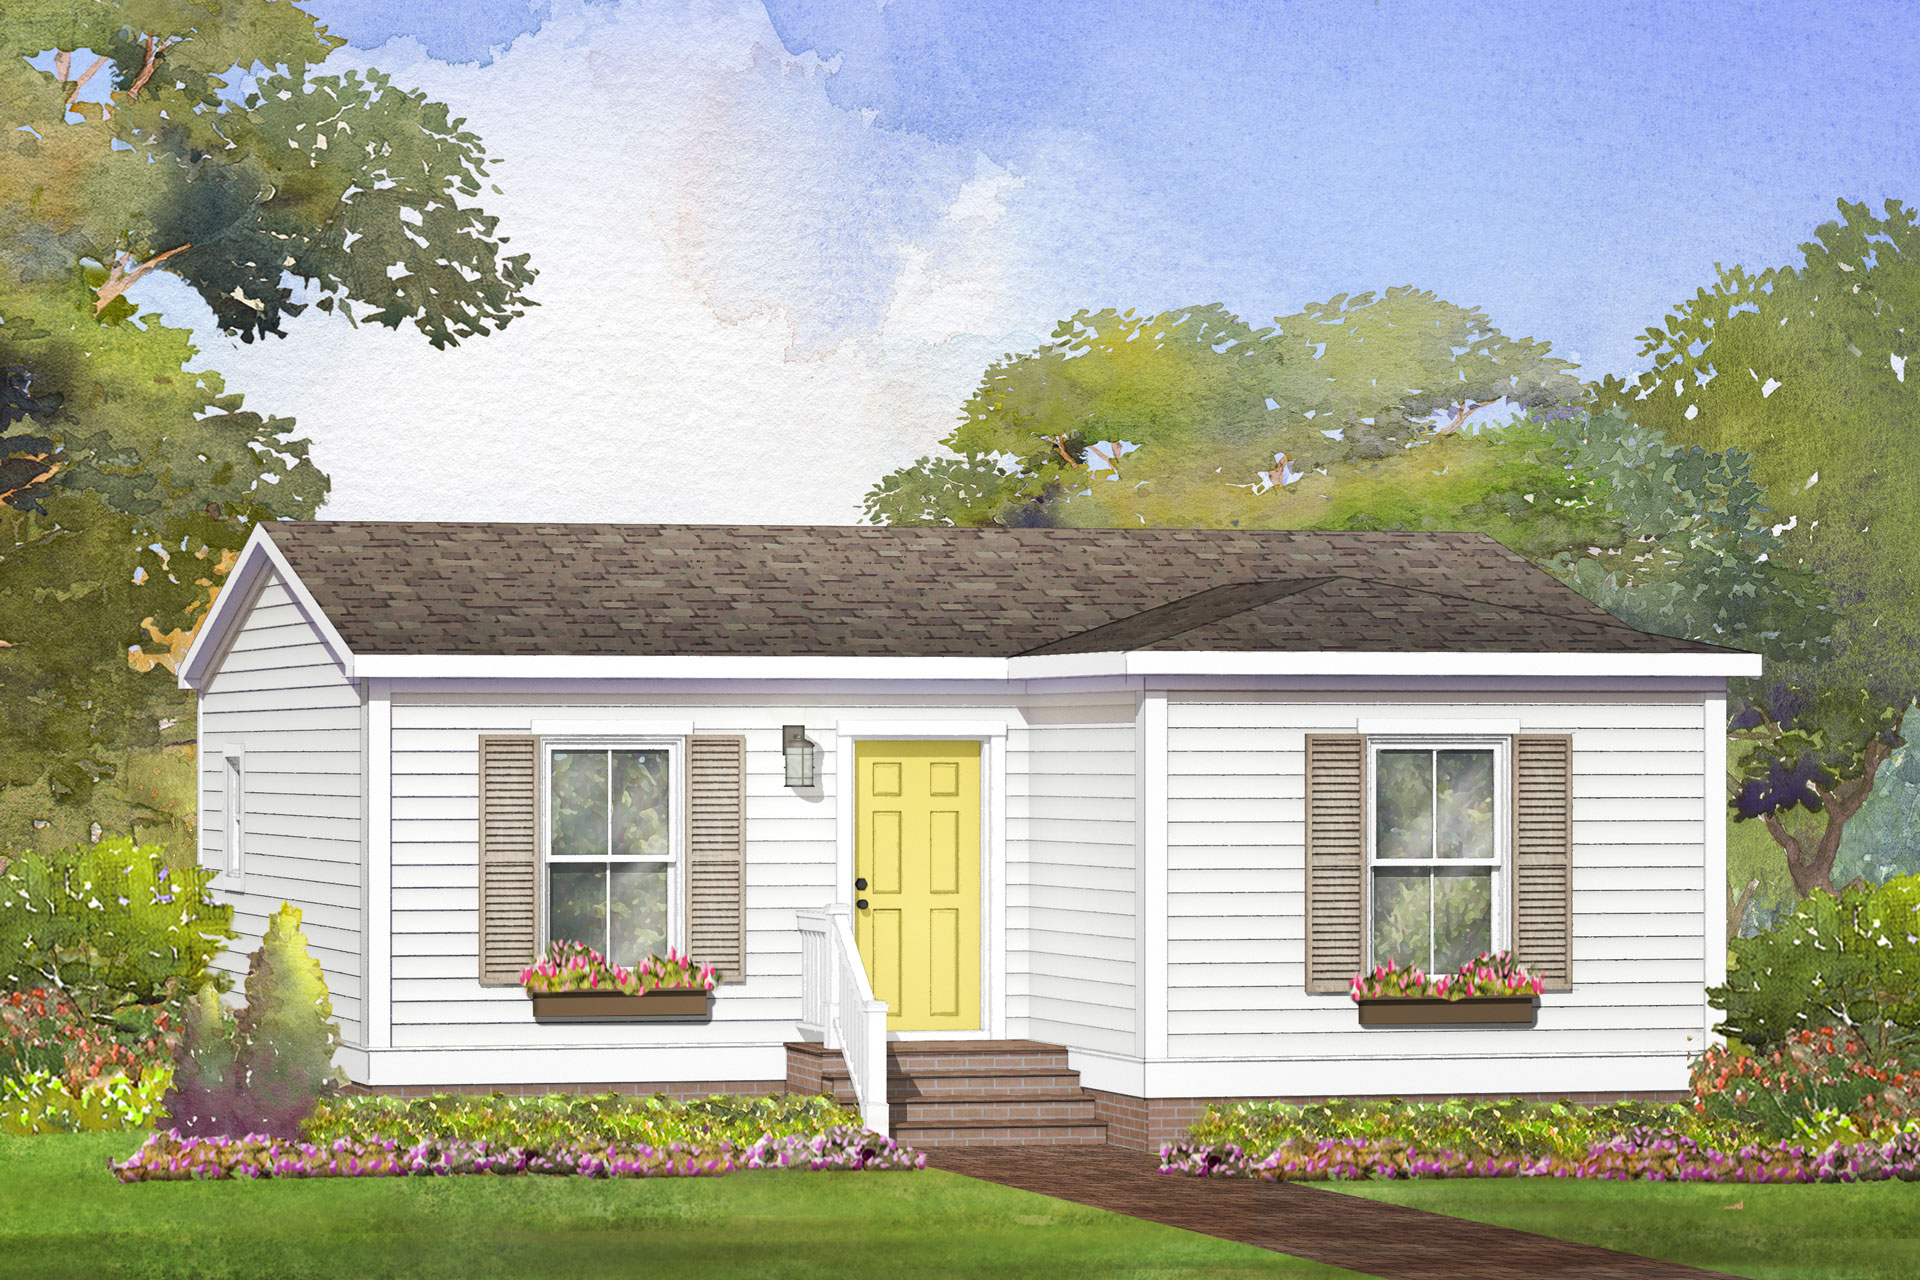 rebeccas cottage modular home rendering